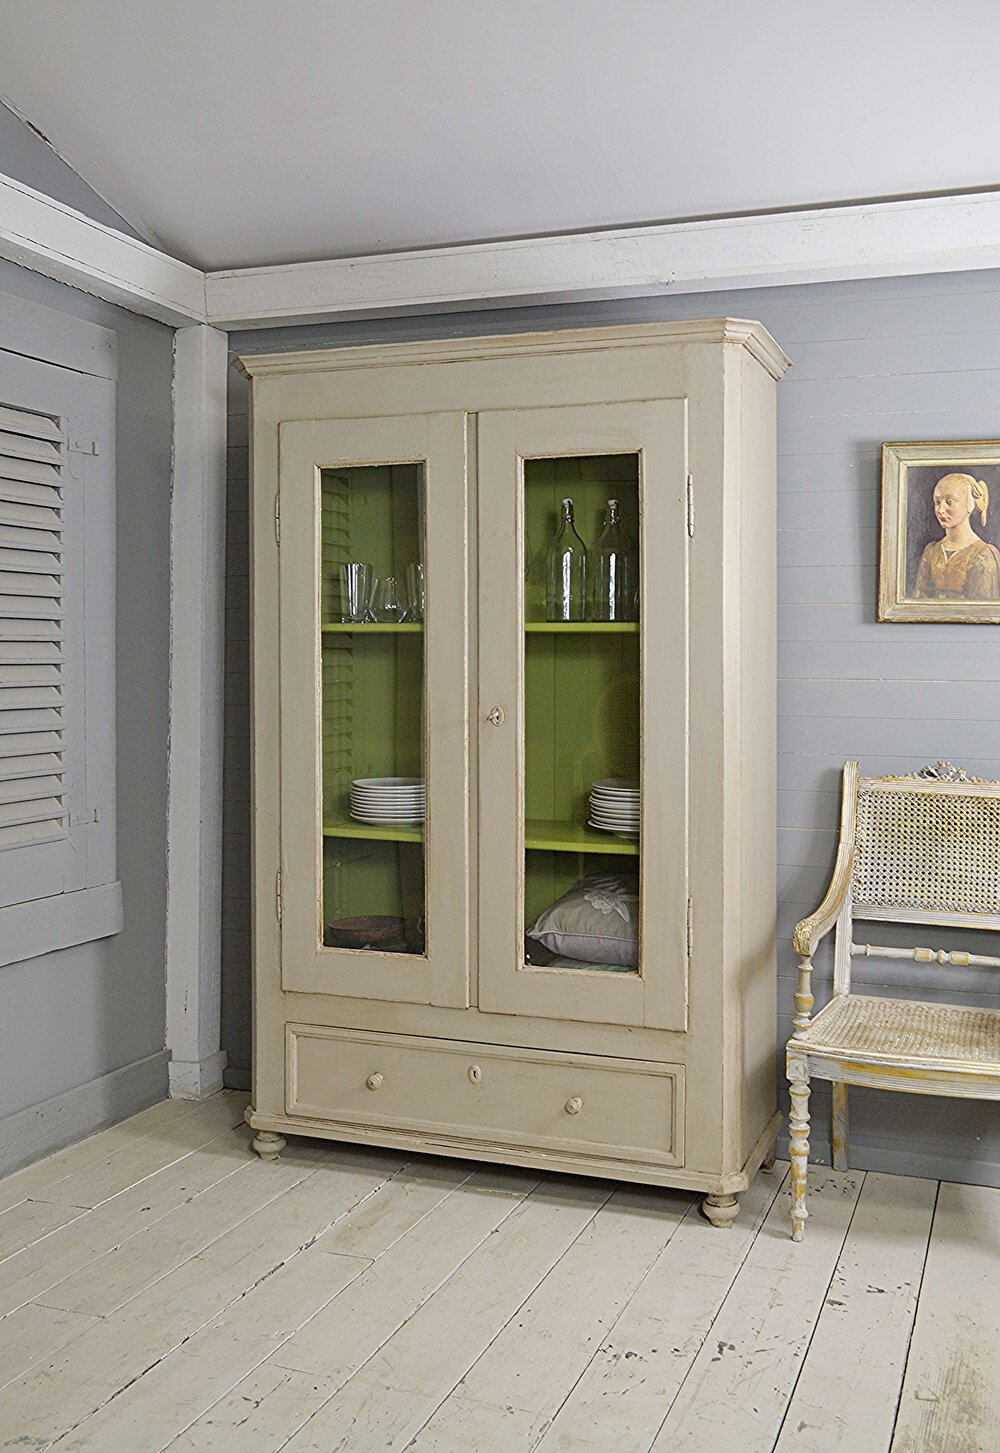 Large Rustic Danish Vintage Linen Cupboard   The Treasure Trove   in Sussex    Shabby Chic Furniture   Vintage Furniture